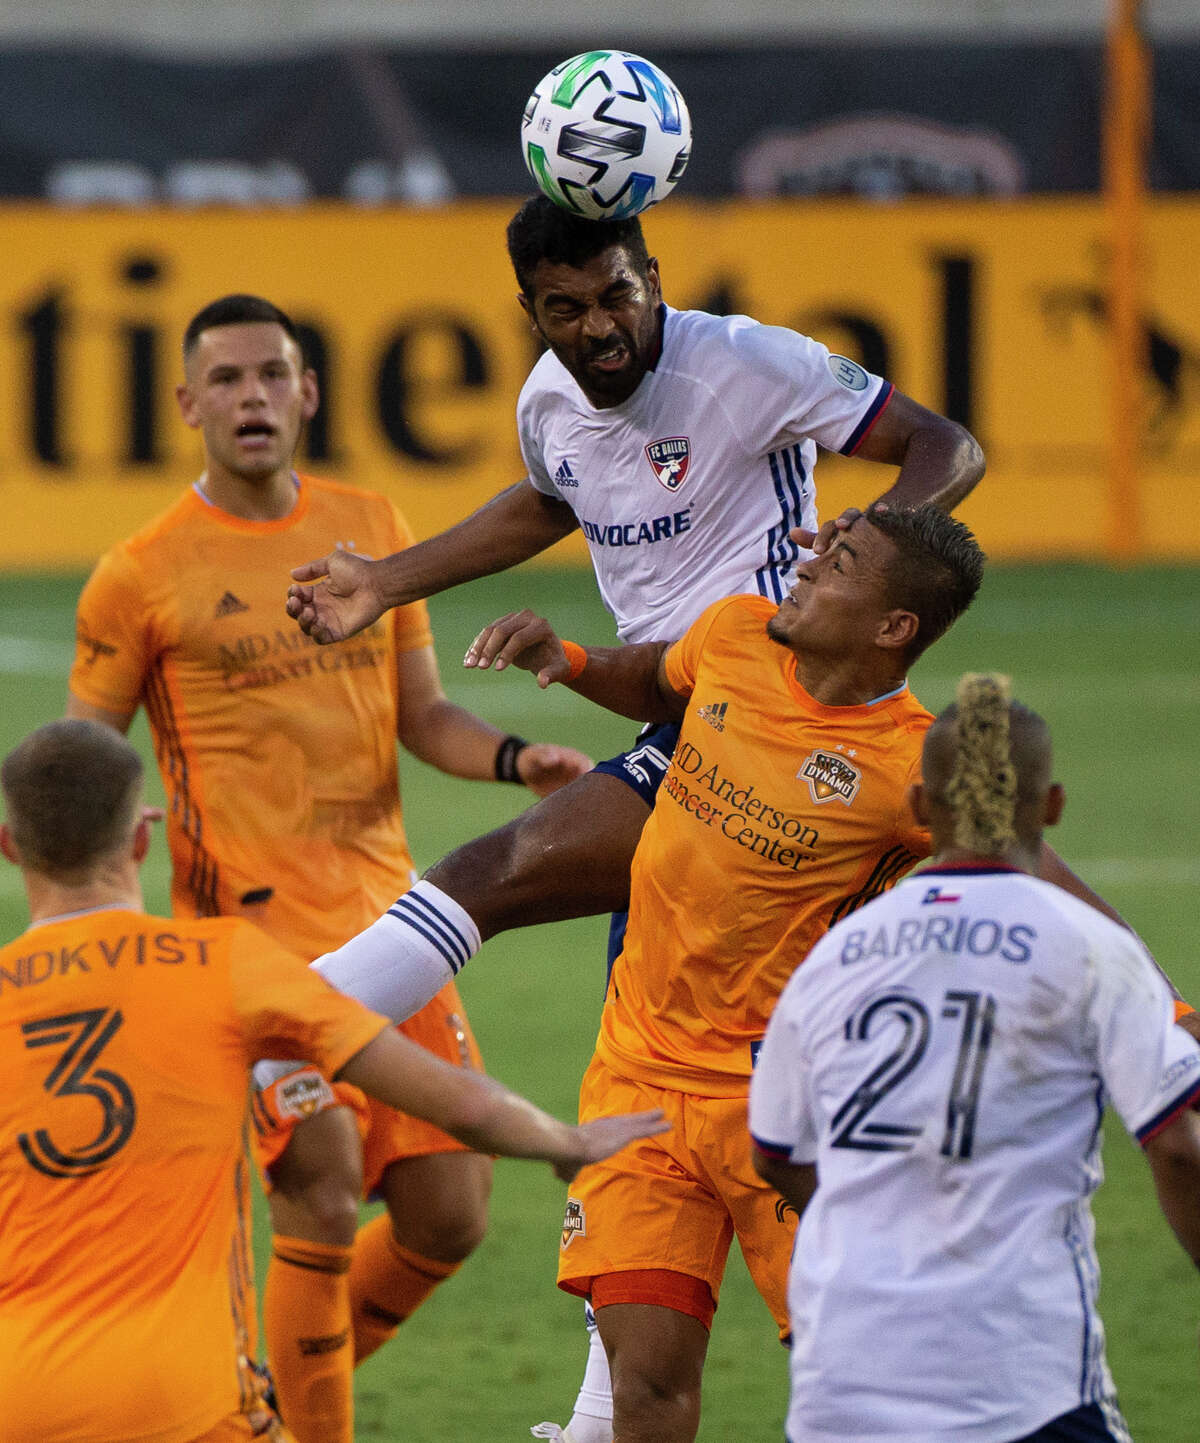 FC Dallas midfielder Thiago Santos (5) wins a header over Houston Dynamo midfielder Darwin Ceren (24) during the first half of the MLS match Friday, Aug. 21, 2020, at BBVA Stadium in Houston. Friday's match was the first Dynamo home game since Feb. 29.